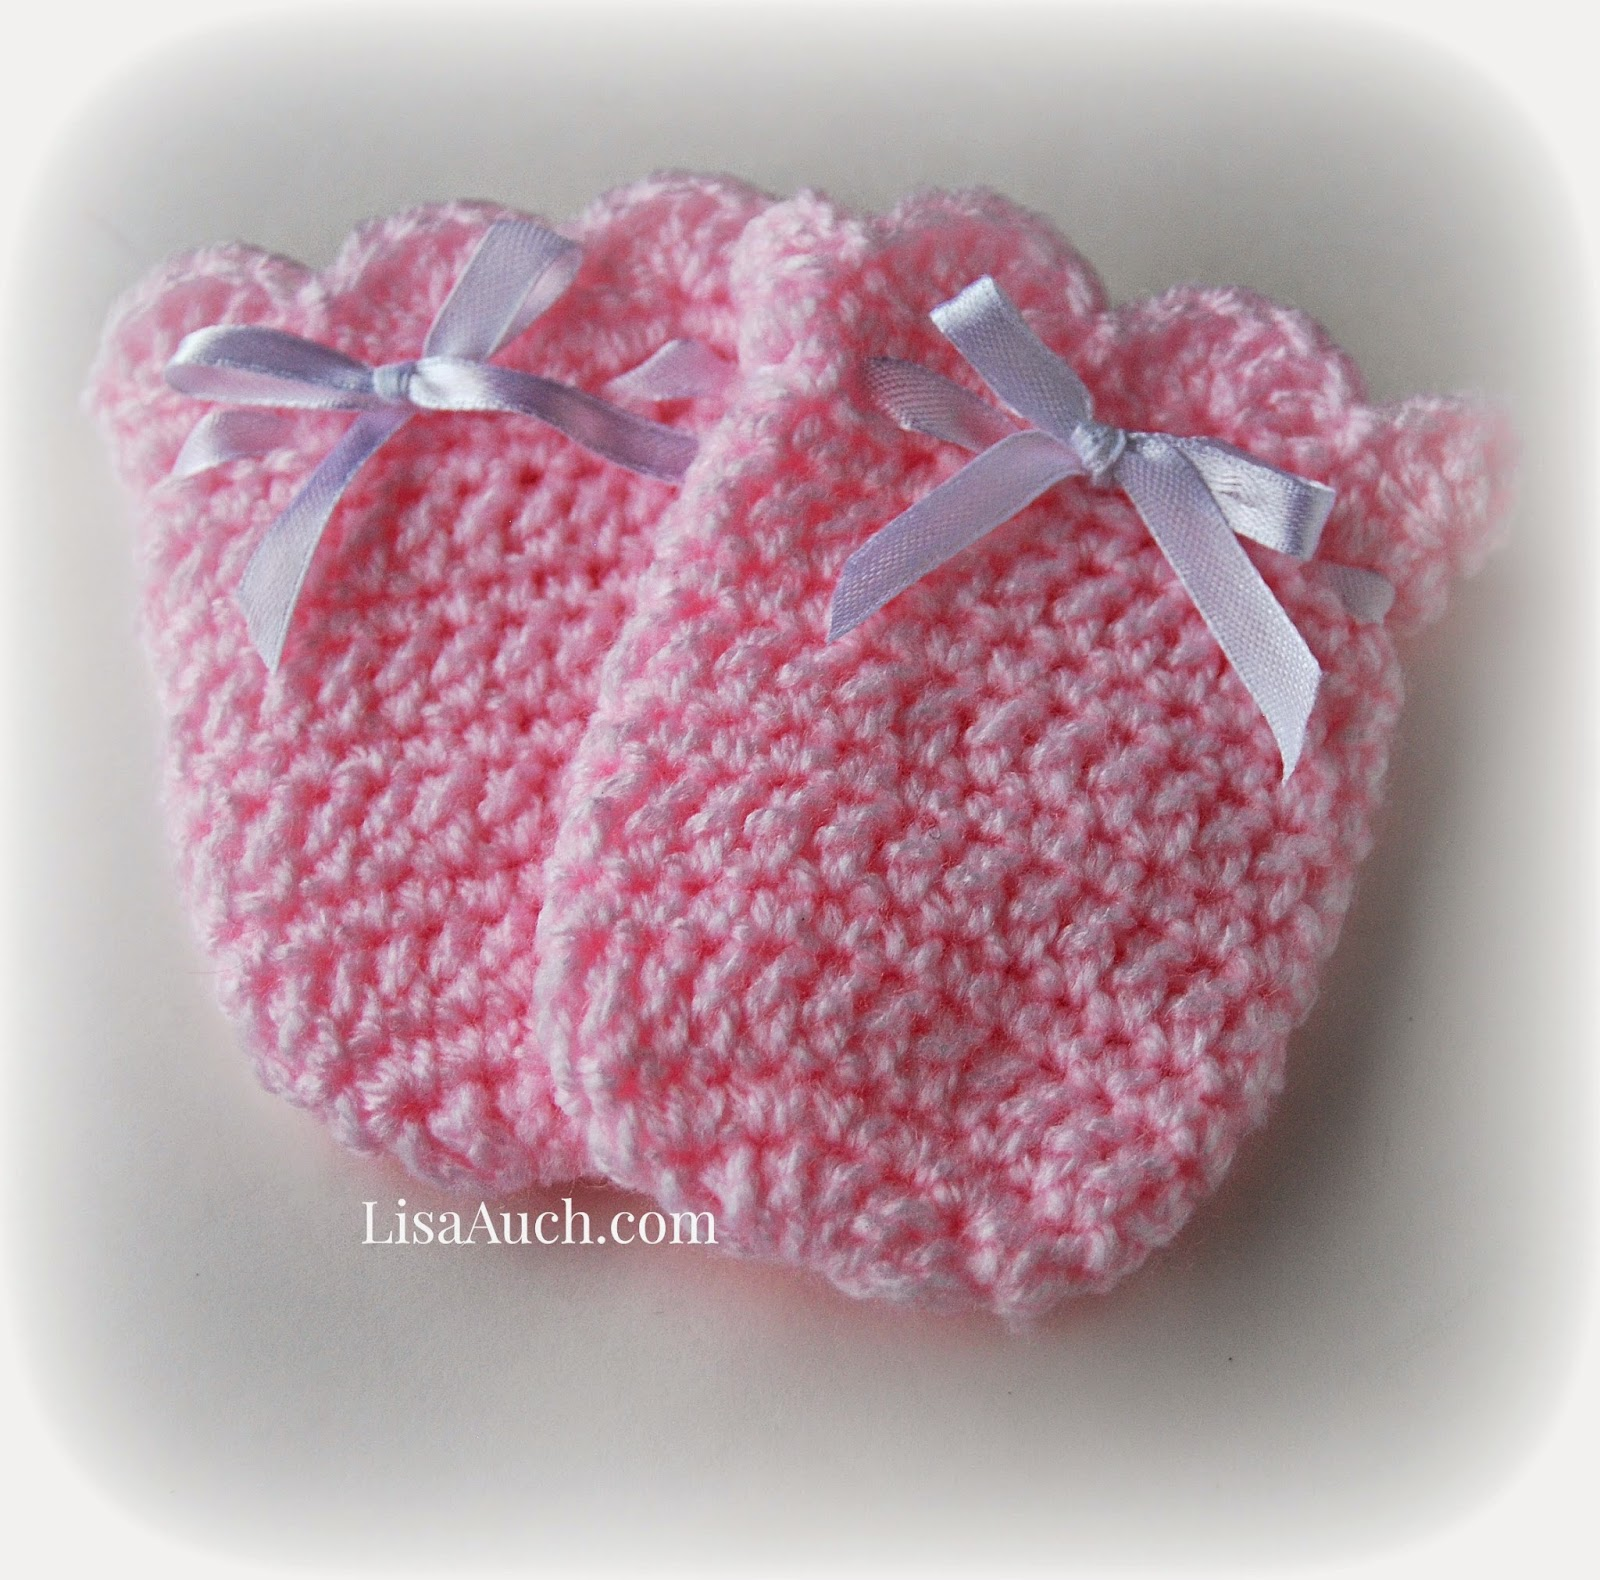 free Crochet Baby Pattern for baby mitts crochet pattern, free crochet pattern for thumbless baby mittens